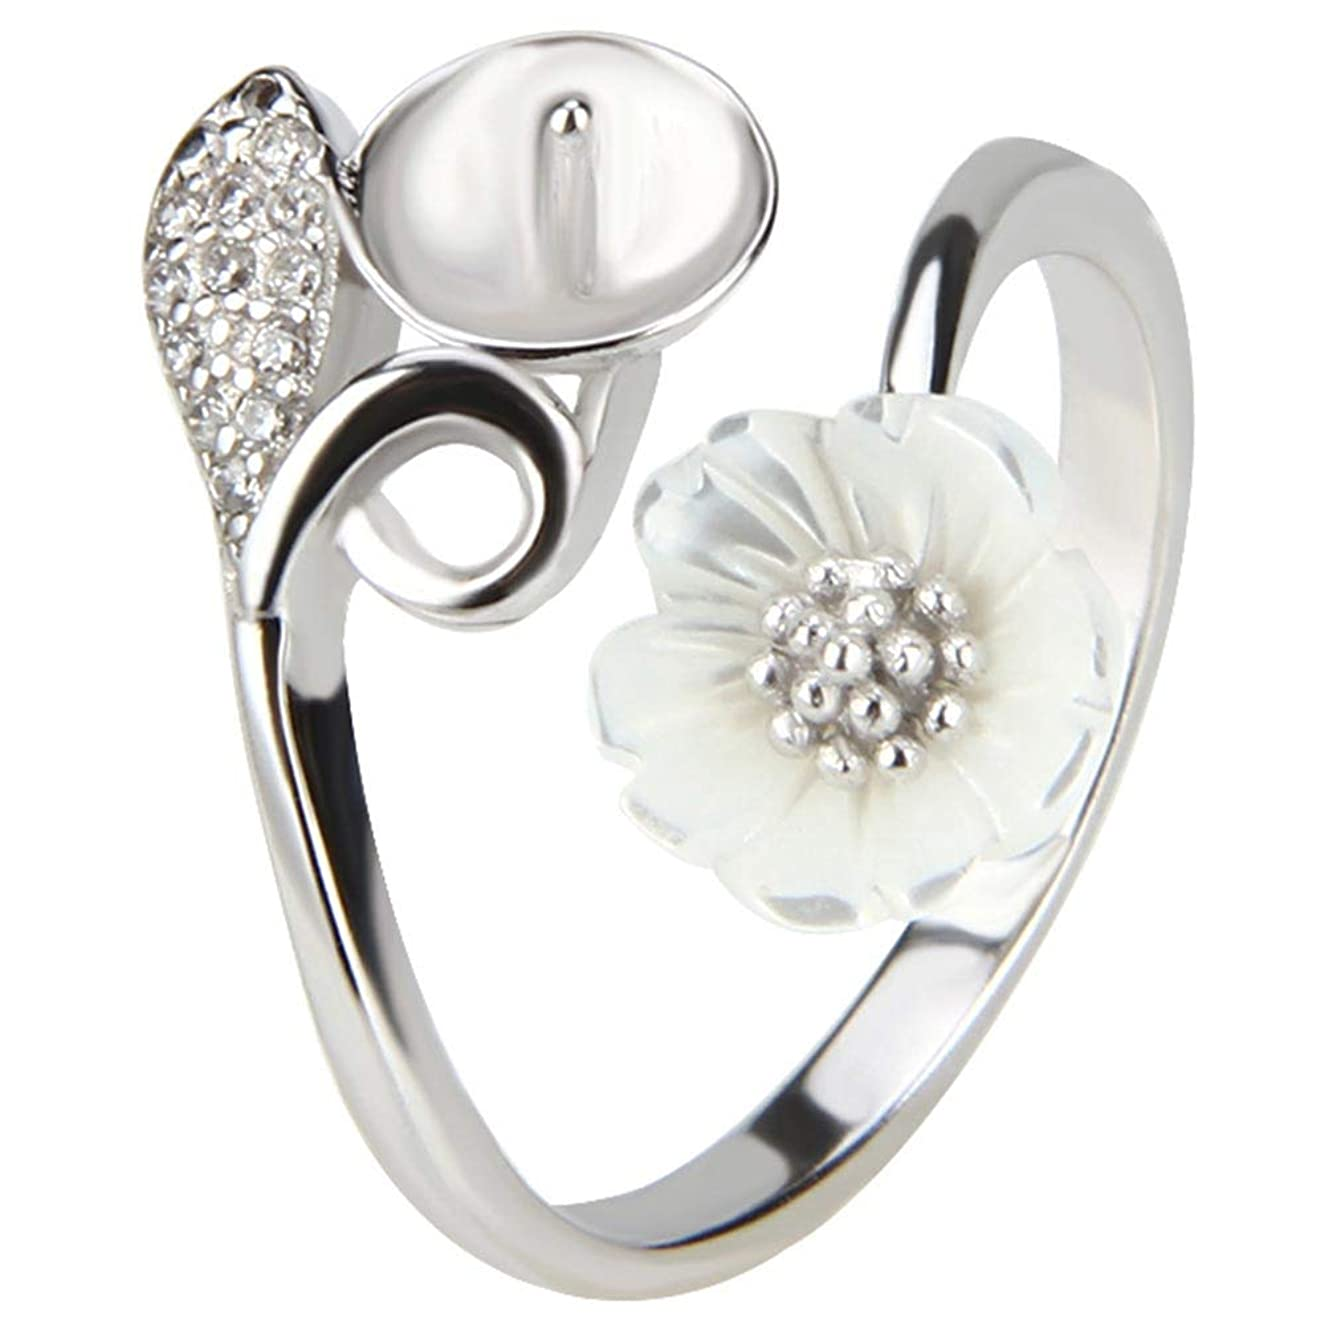 NY Jewelry 925 Sterling Silver Adjustable Flower Ring for Pearl, Pearl Ring Mounts Fittings for Women DIY Jewelry Making(925 Silver/Gold Plating)